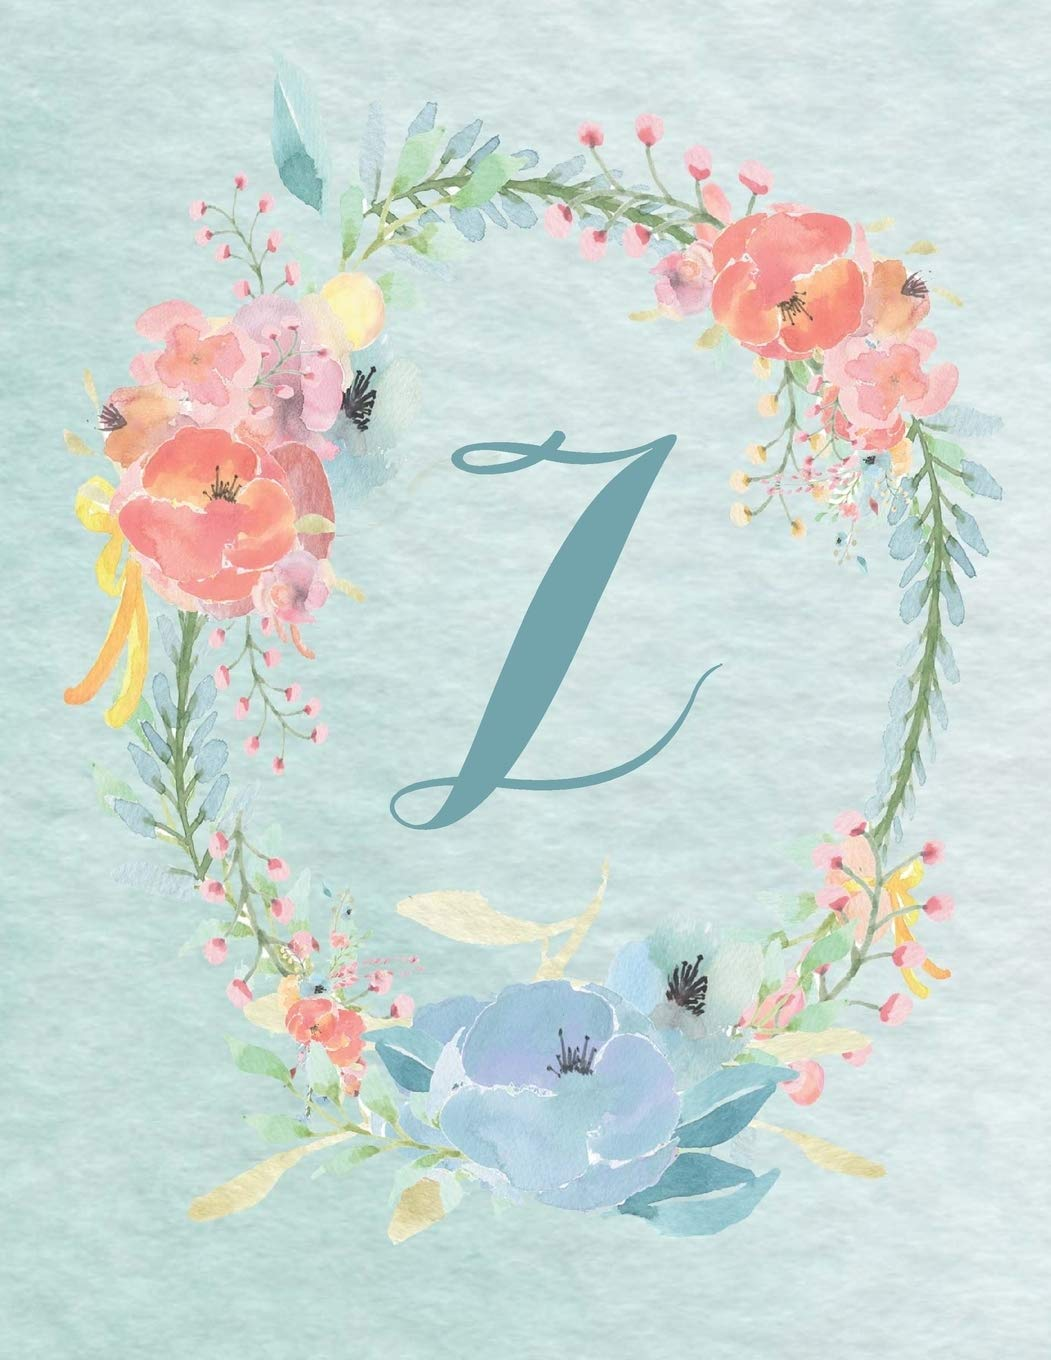 Spring 2022 Uf Calendar.Buy 2020 2022 Calendar Letter Z Light Blue And Pink Floral Design 3 Year 8 5 X11 Monthly Calendar Planner Personalized With Initials Pink Floral Design 3 Yr Calendar Alphabet Book Online At Low